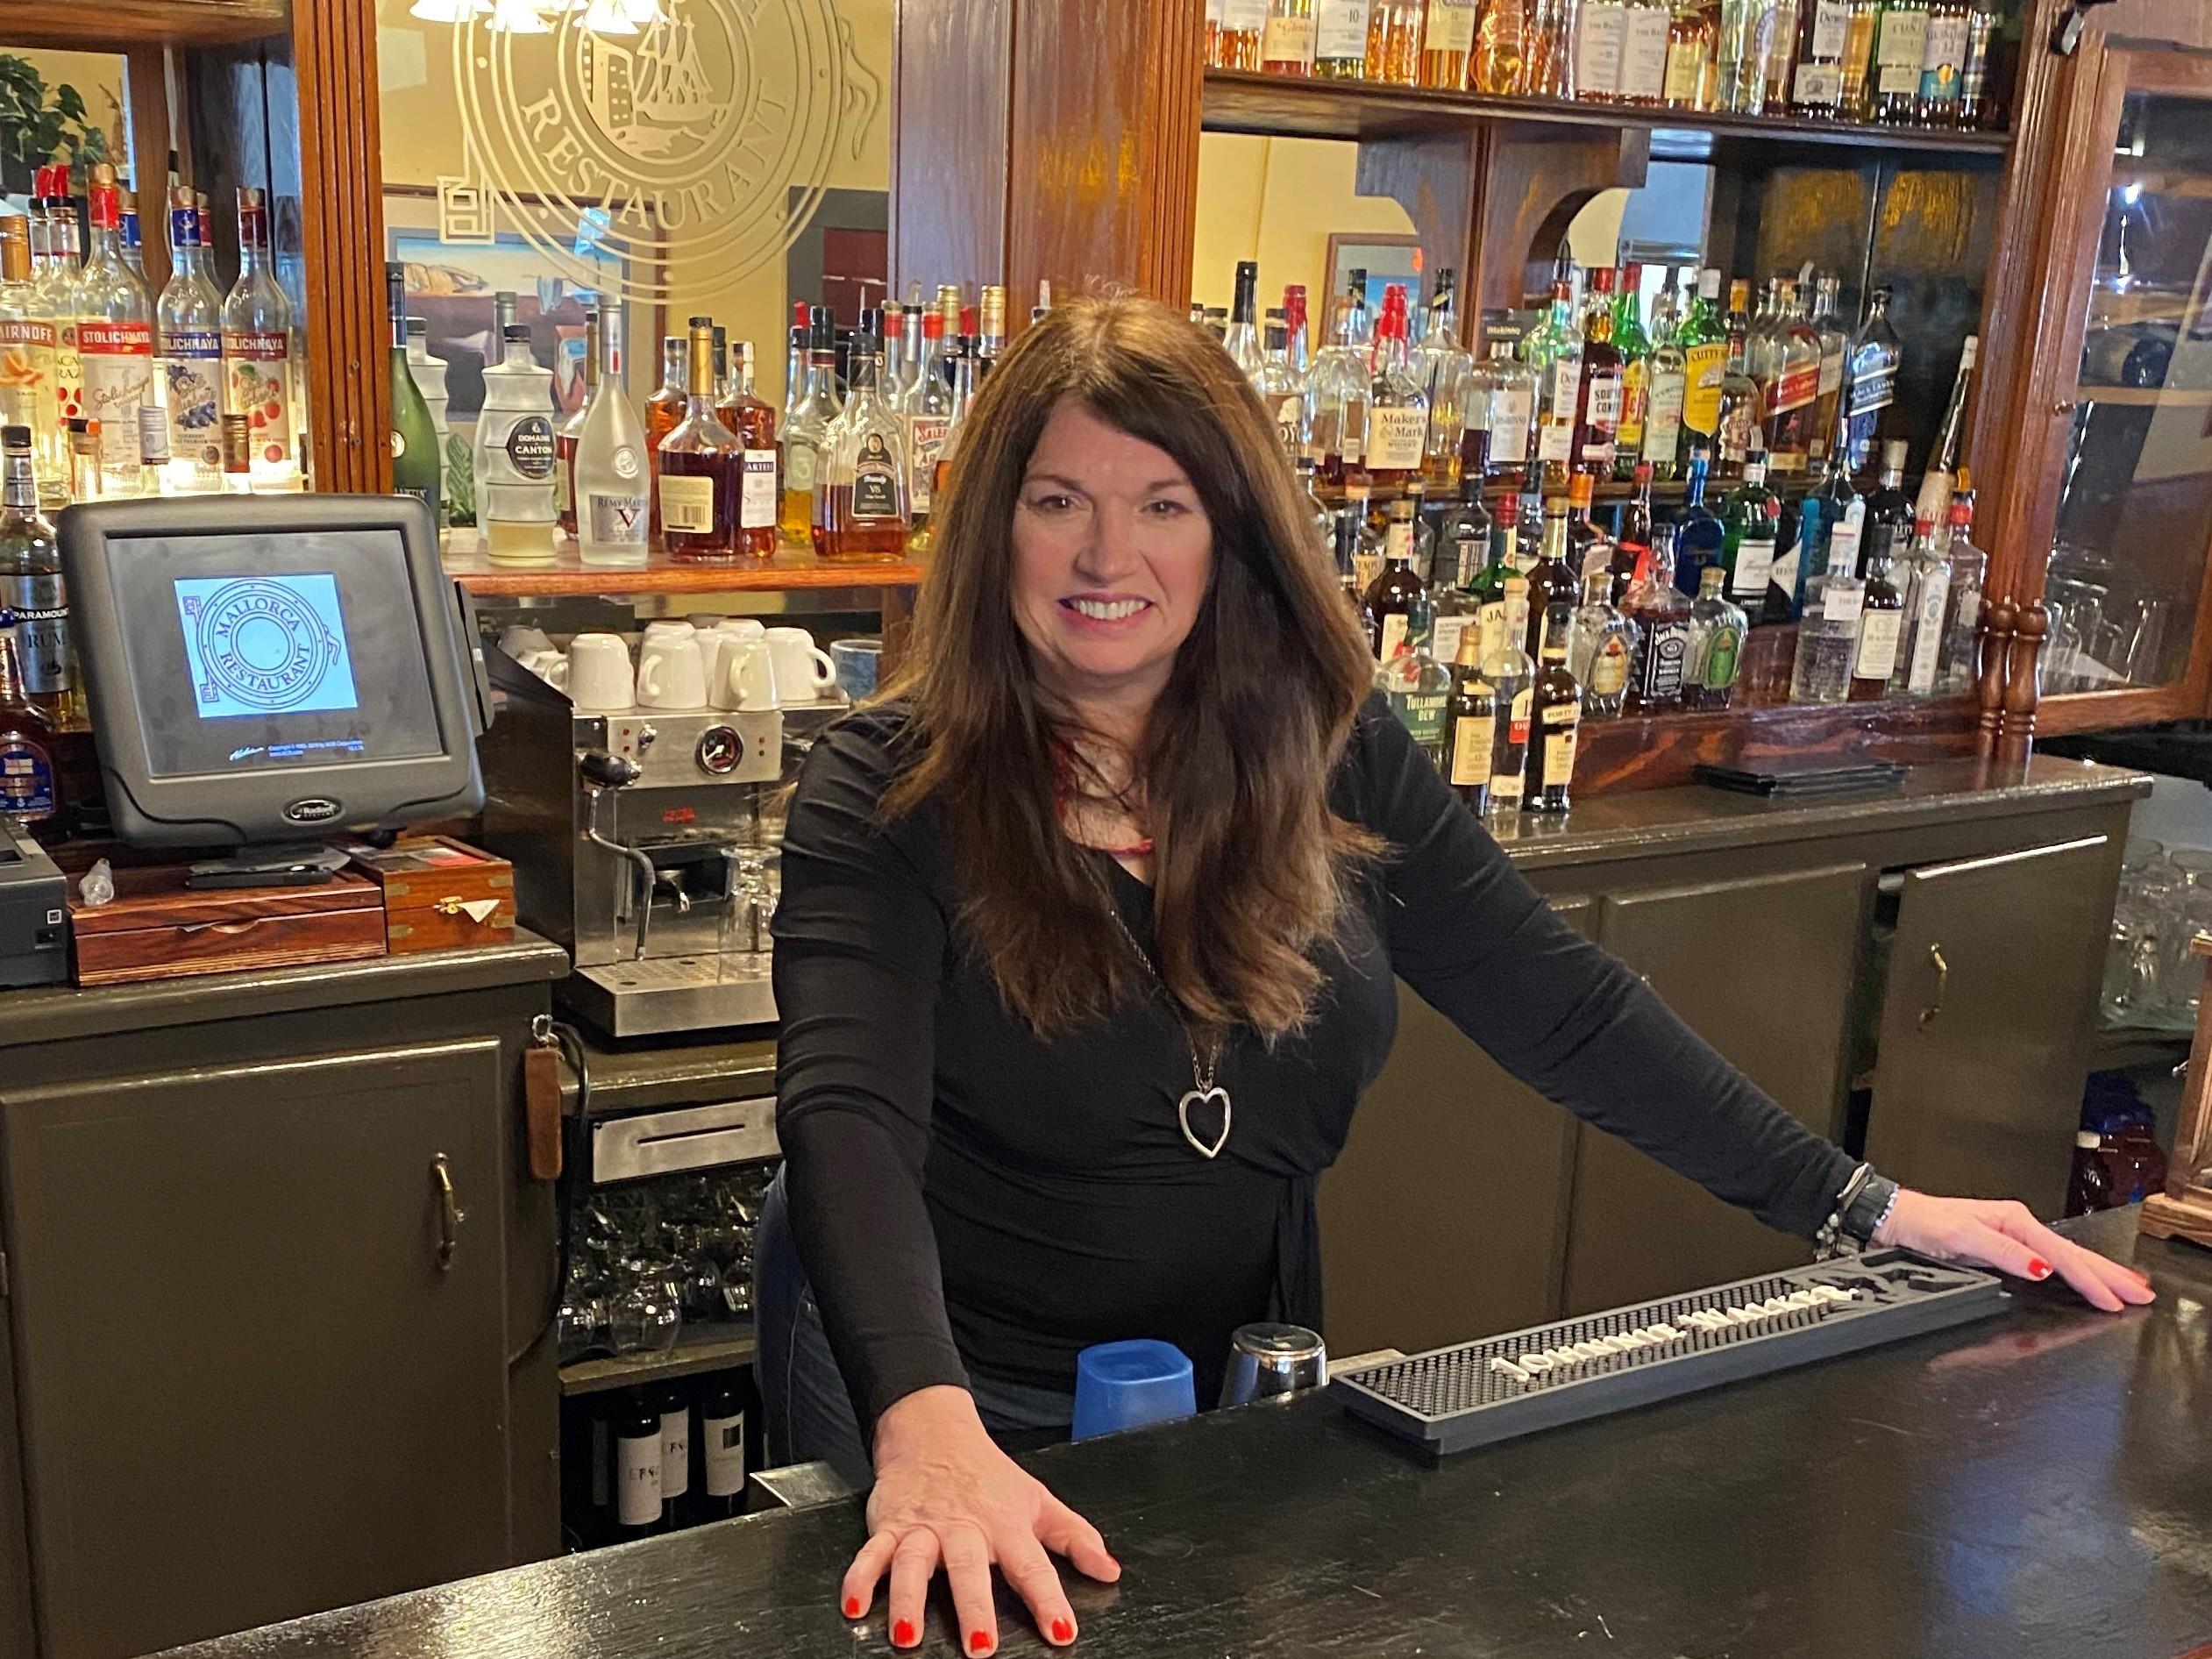 Laurie Torres owns Mallorca in downtown Cleveland. She says businesses will have trouble making the finances work if the tipped wage were to change.